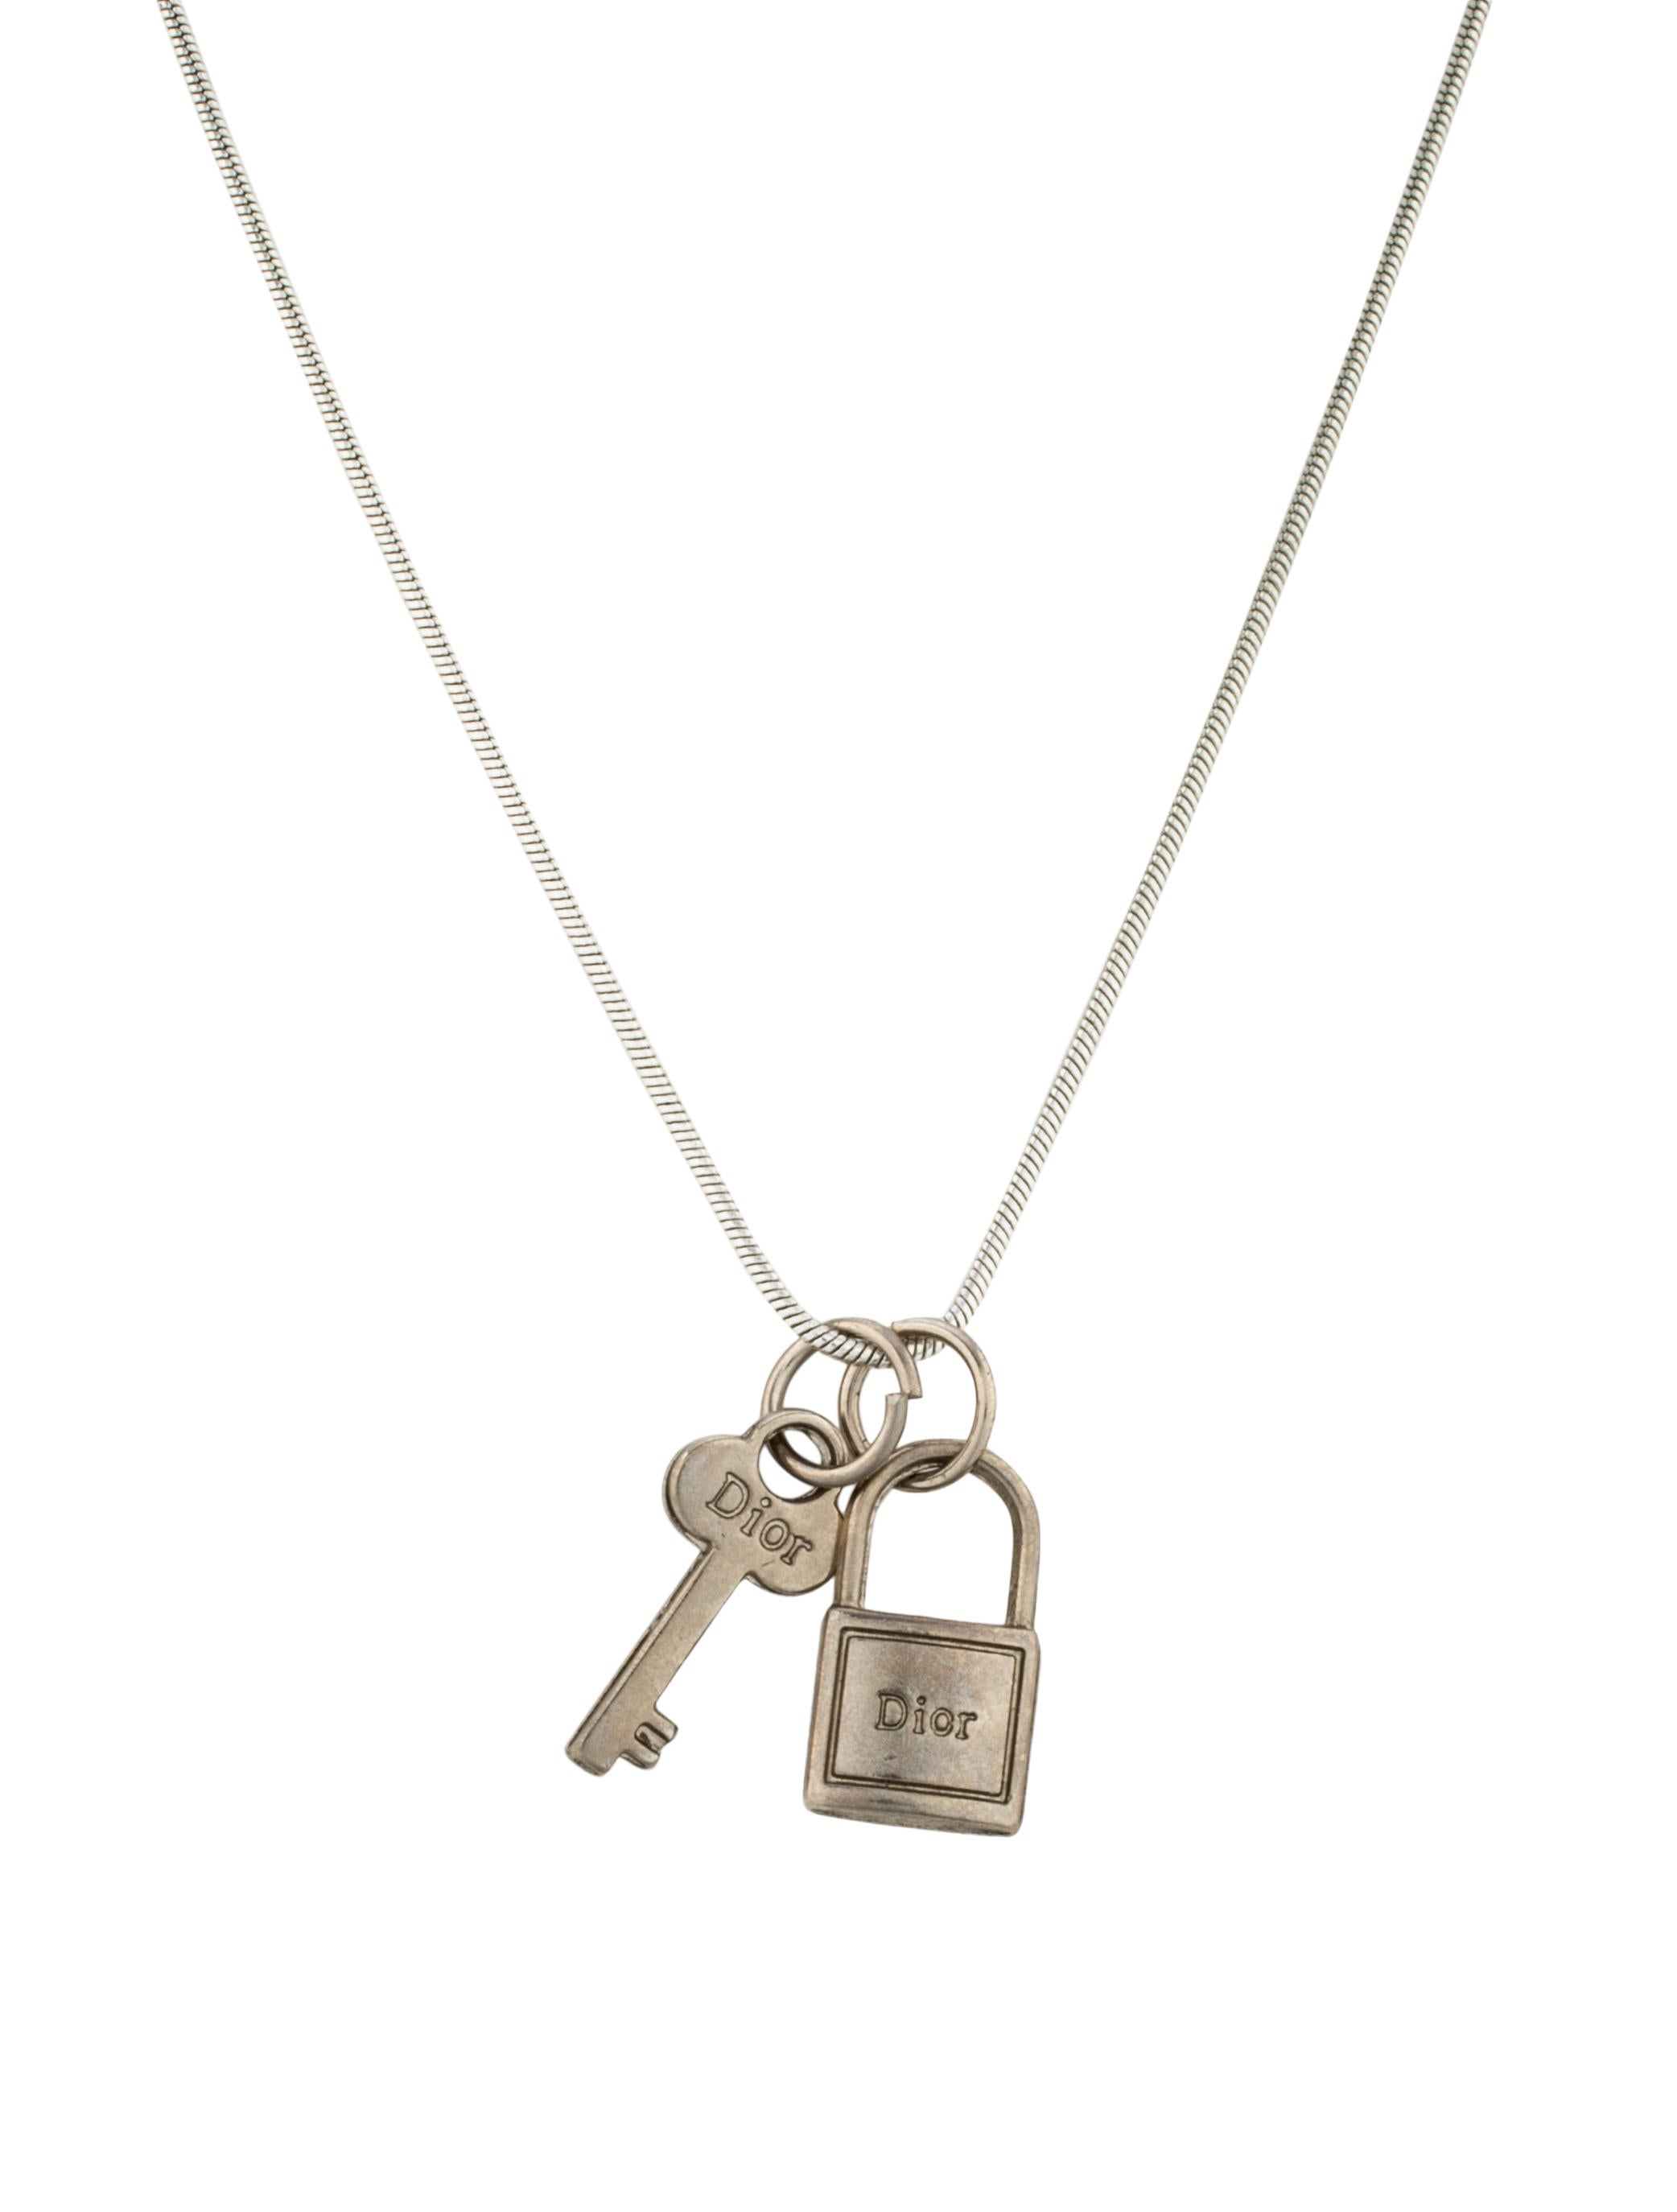 Christian Dior Lock Amp Key Necklace Necklaces Chr46273